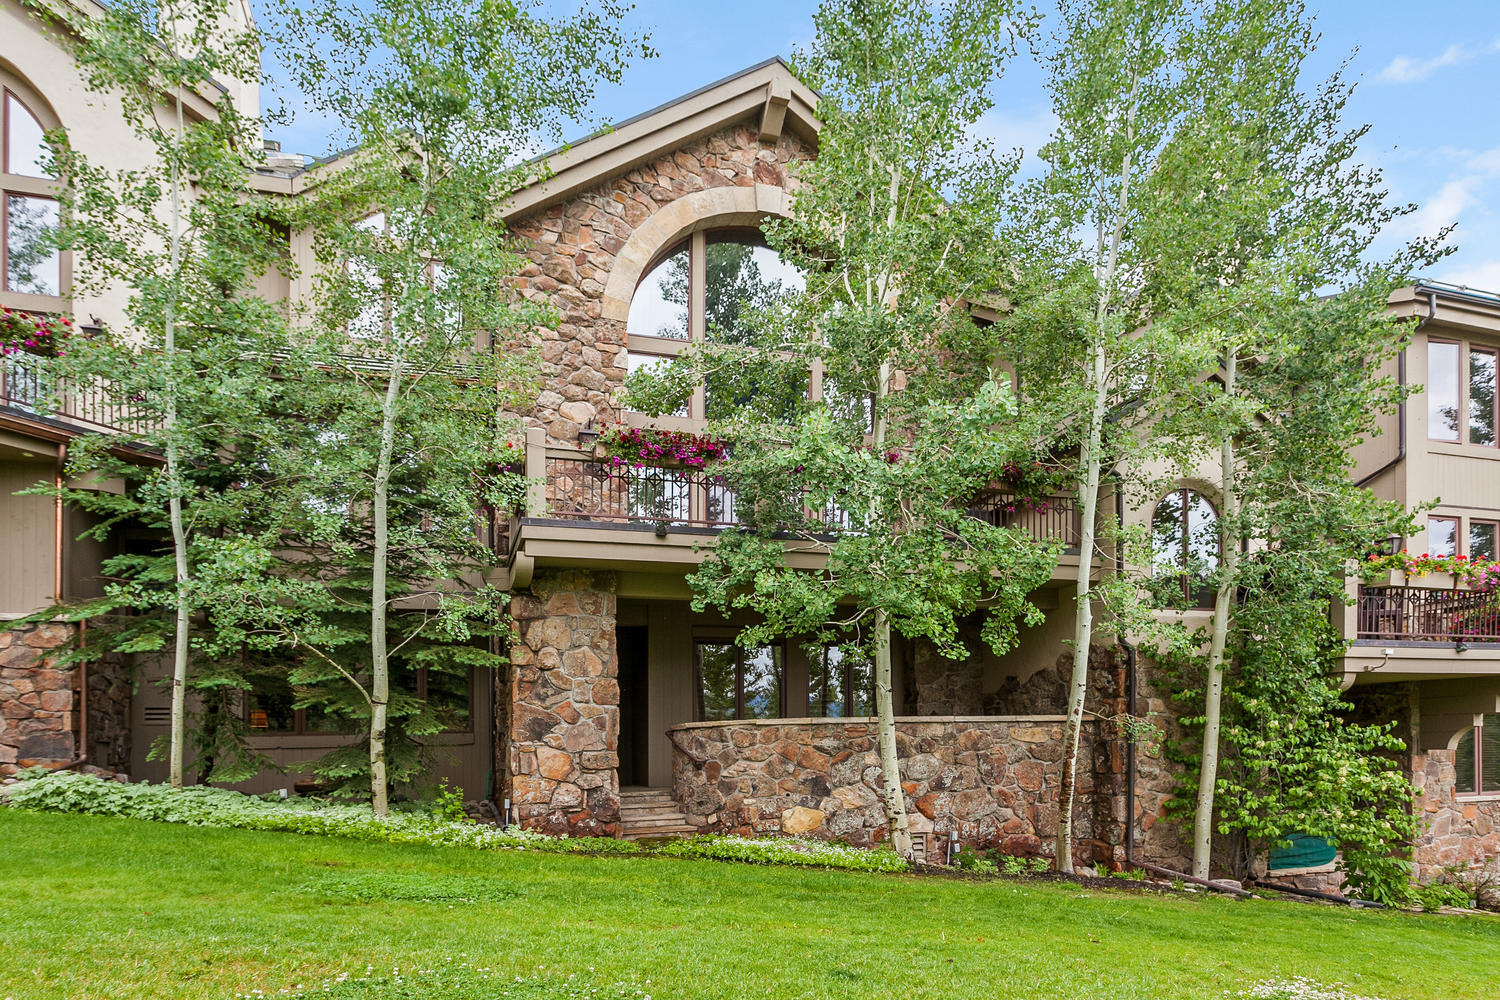 Таунхаус для того Продажа на Wiltshire Court #5 52 Highlands Lane Beaver Creek, Beaver Creek, Колорадо, 81620 Соединенные Штаты